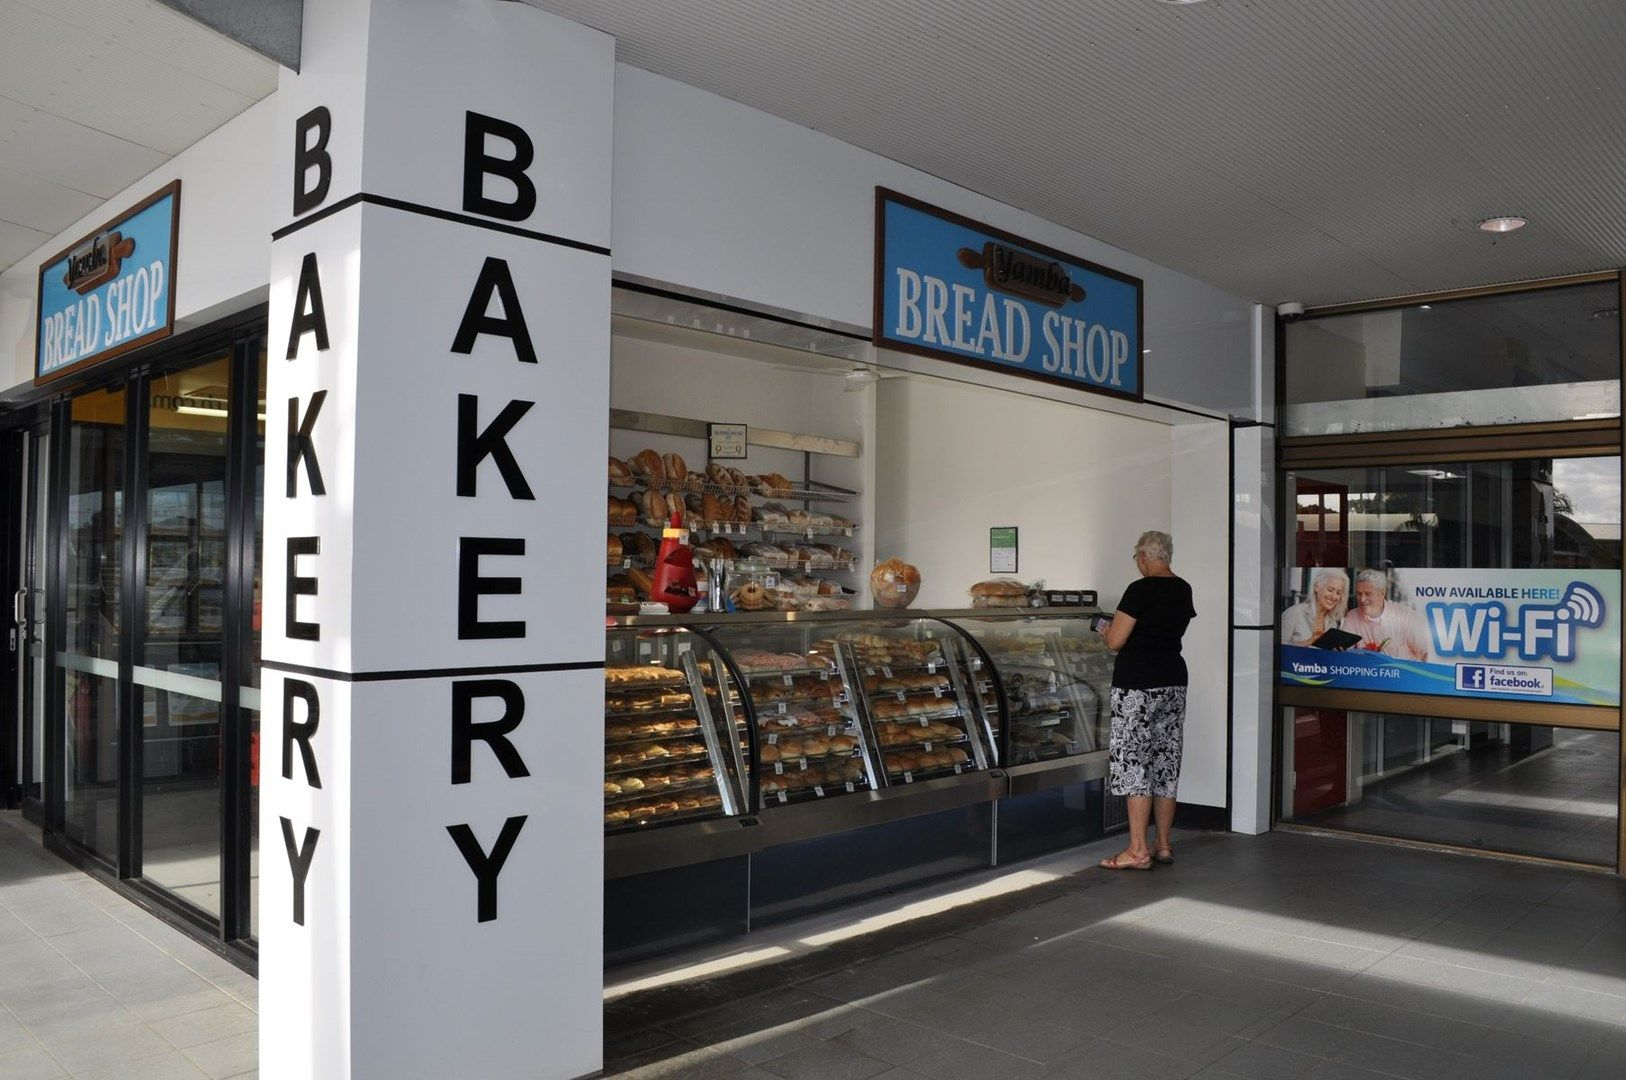 Yamba Bread Shop Yamba Shopping Fair, Yamba NSW 2464, Image 0